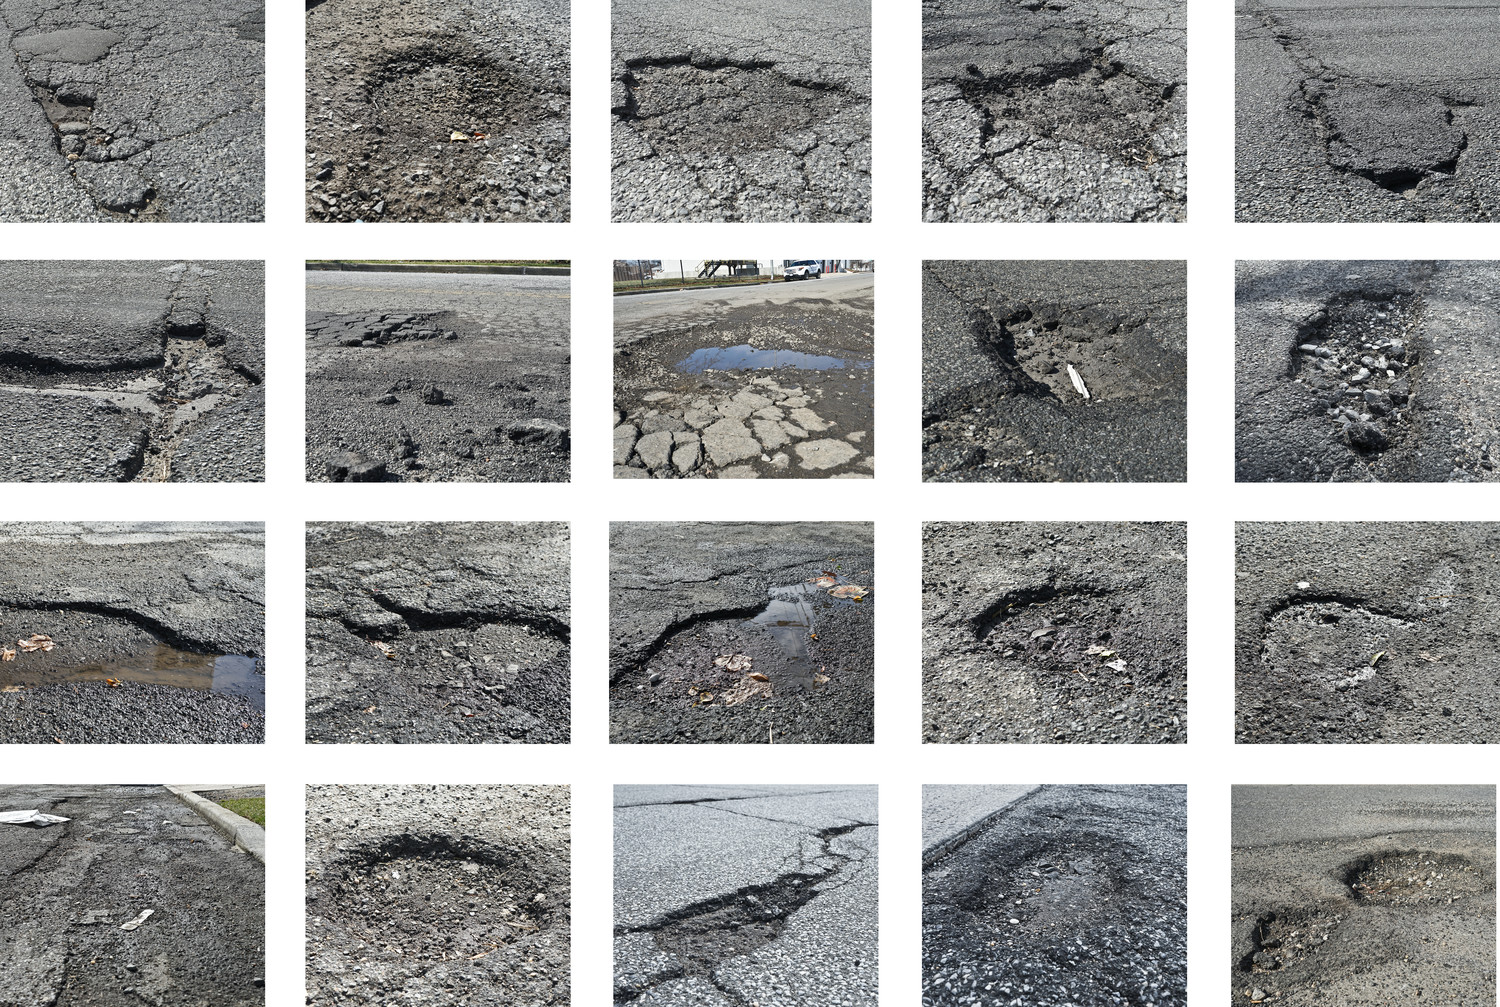 As winter wanes, potholes have appeared on streets across Oceanside and Island Park, presenting a danger to motorists.